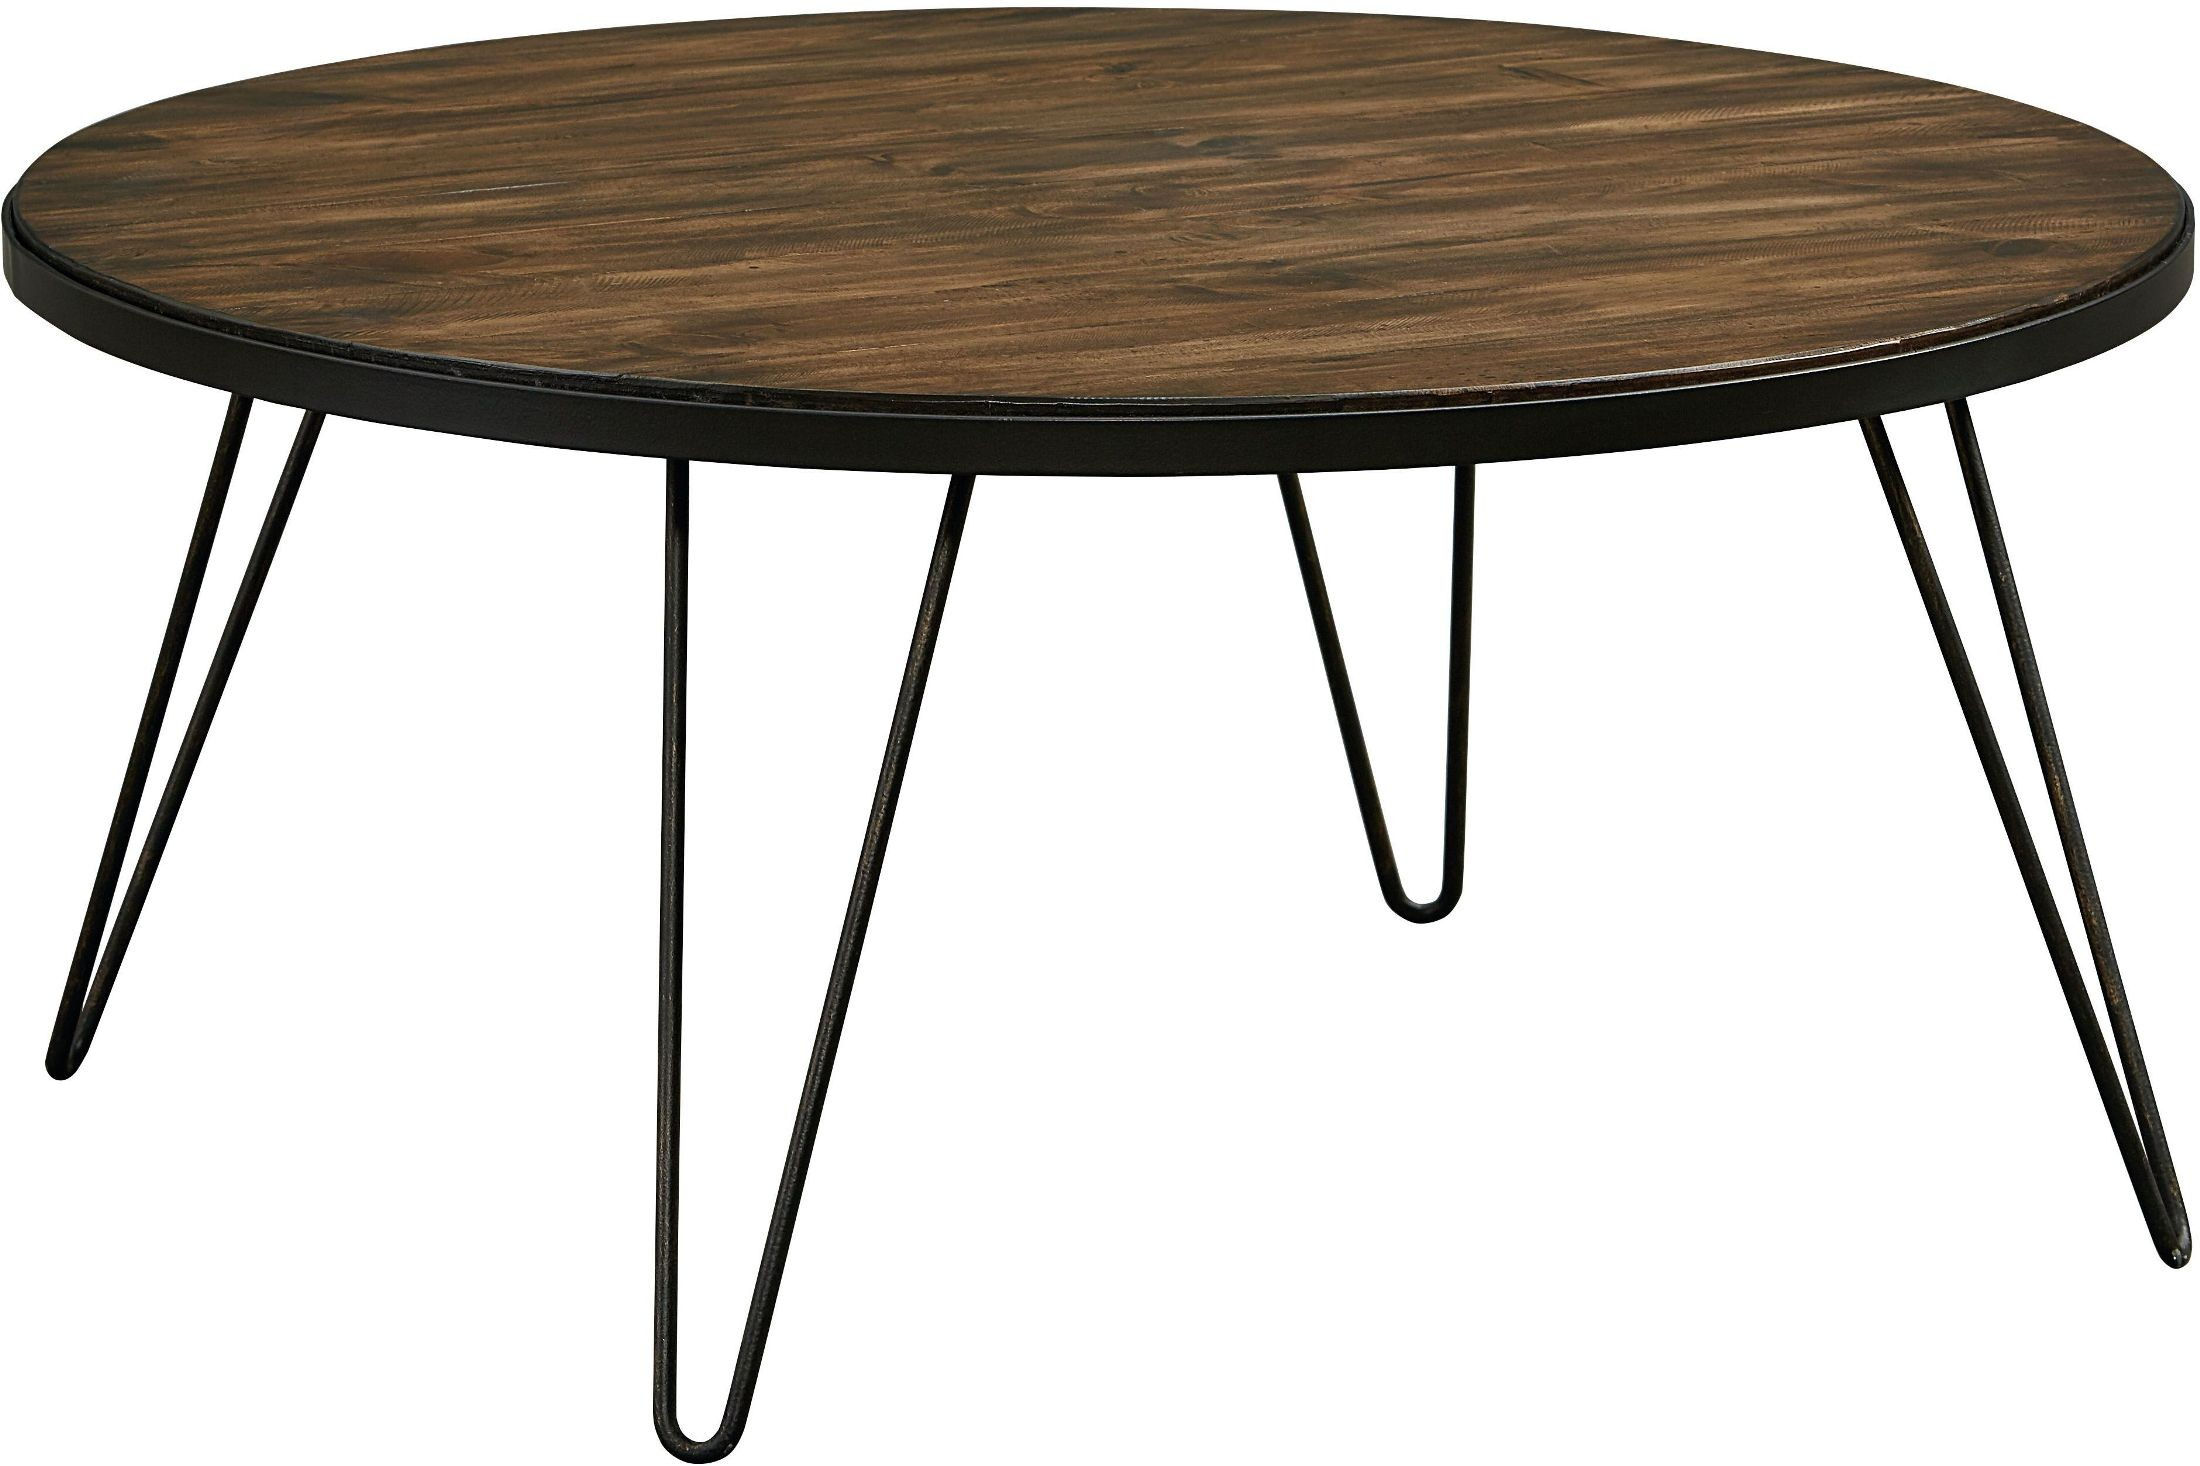 Paterno Rustic Brown Cocktail Table From Standard Furniture Coleman Furniture